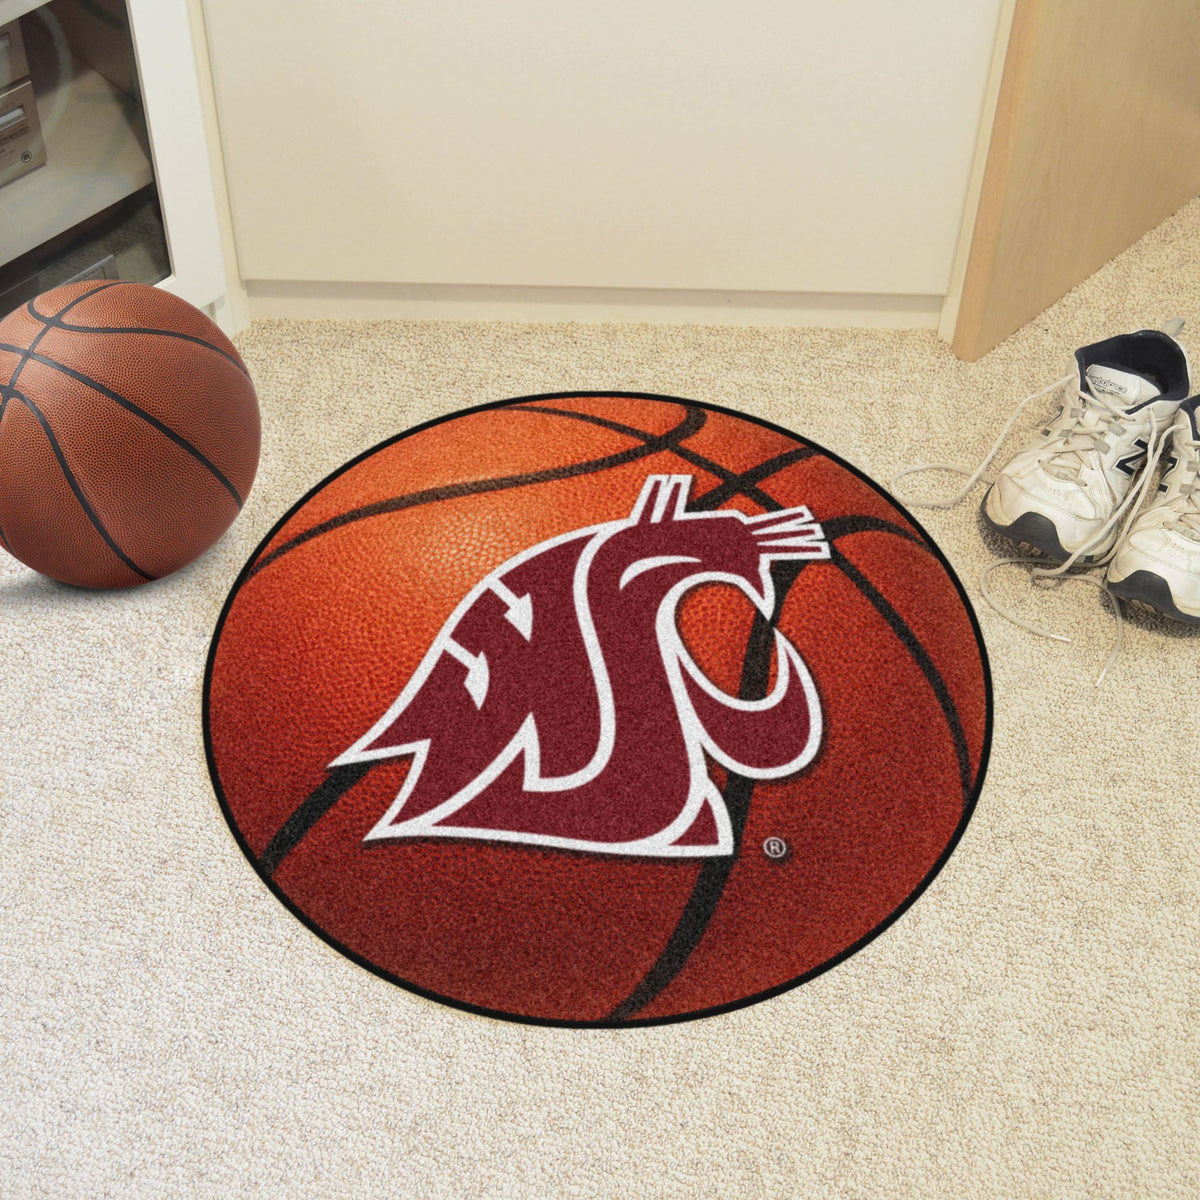 Collegiate - Basketball Mat: T - Z Collegiate Mats, Rectangular Mats, Basketball Mat, Collegiate, Home Fan Mats Washington State